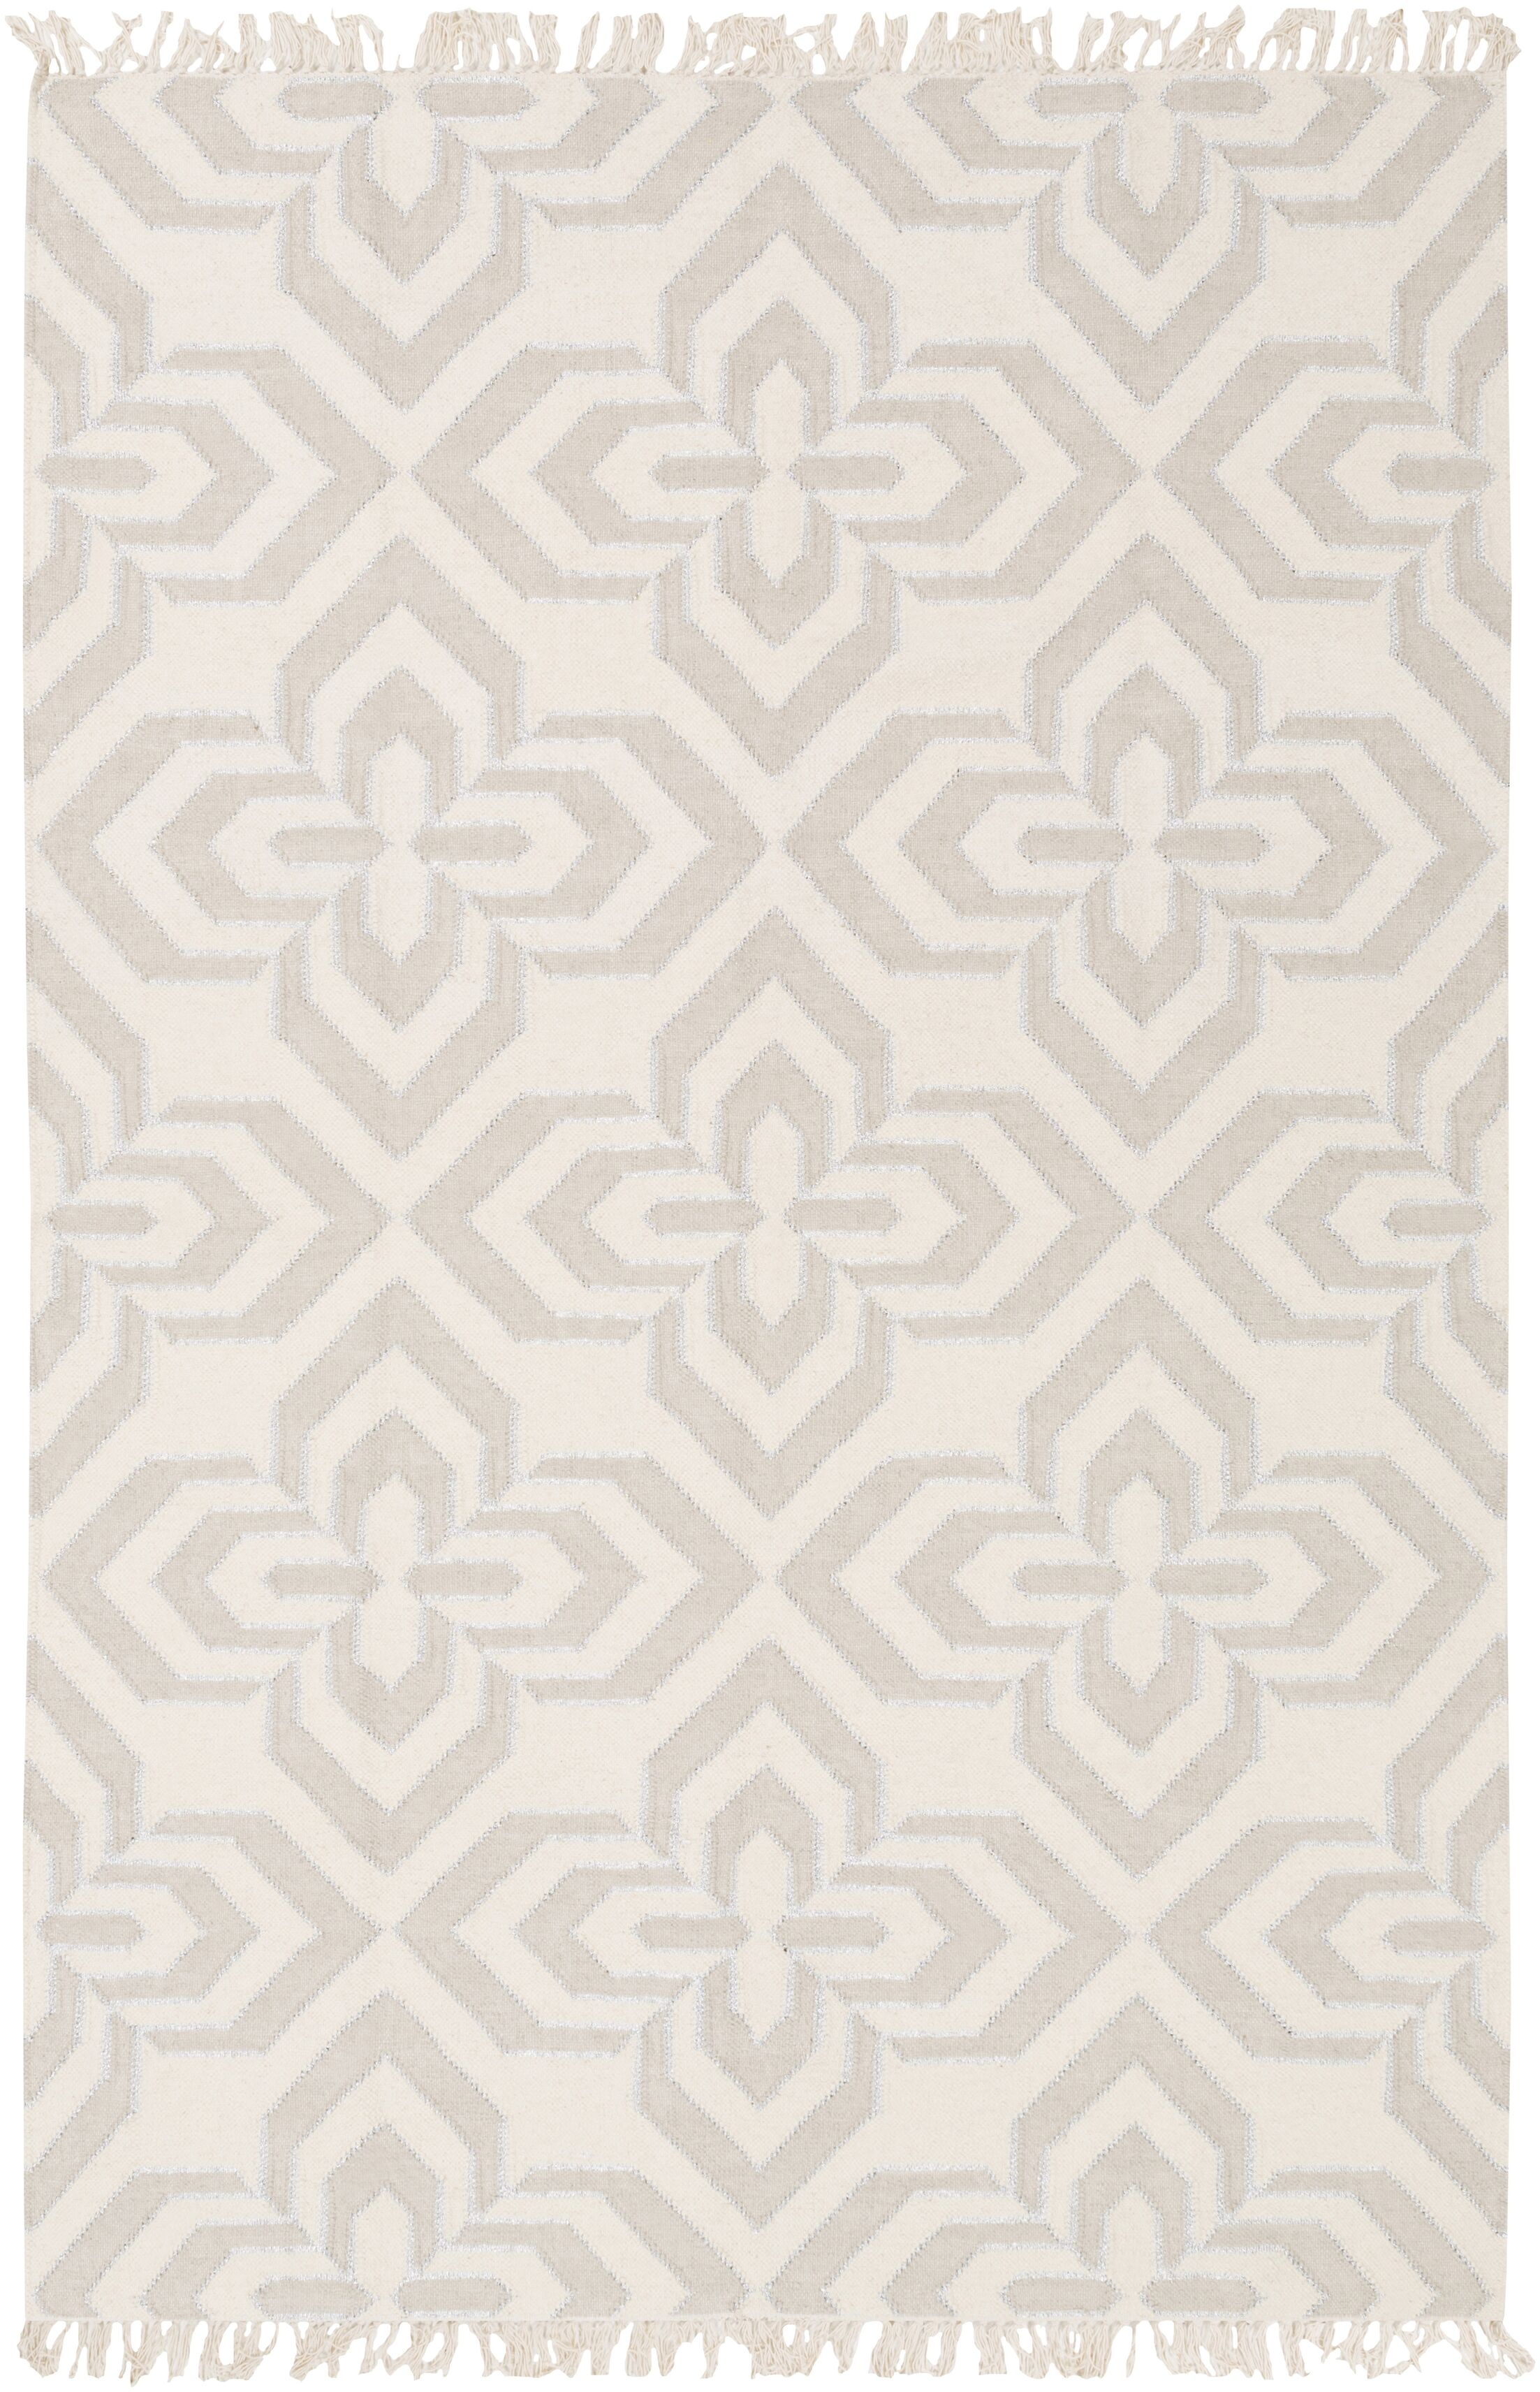 Roselawn Taupe Area Rug Rug Size: Rectangle 2' x 3'